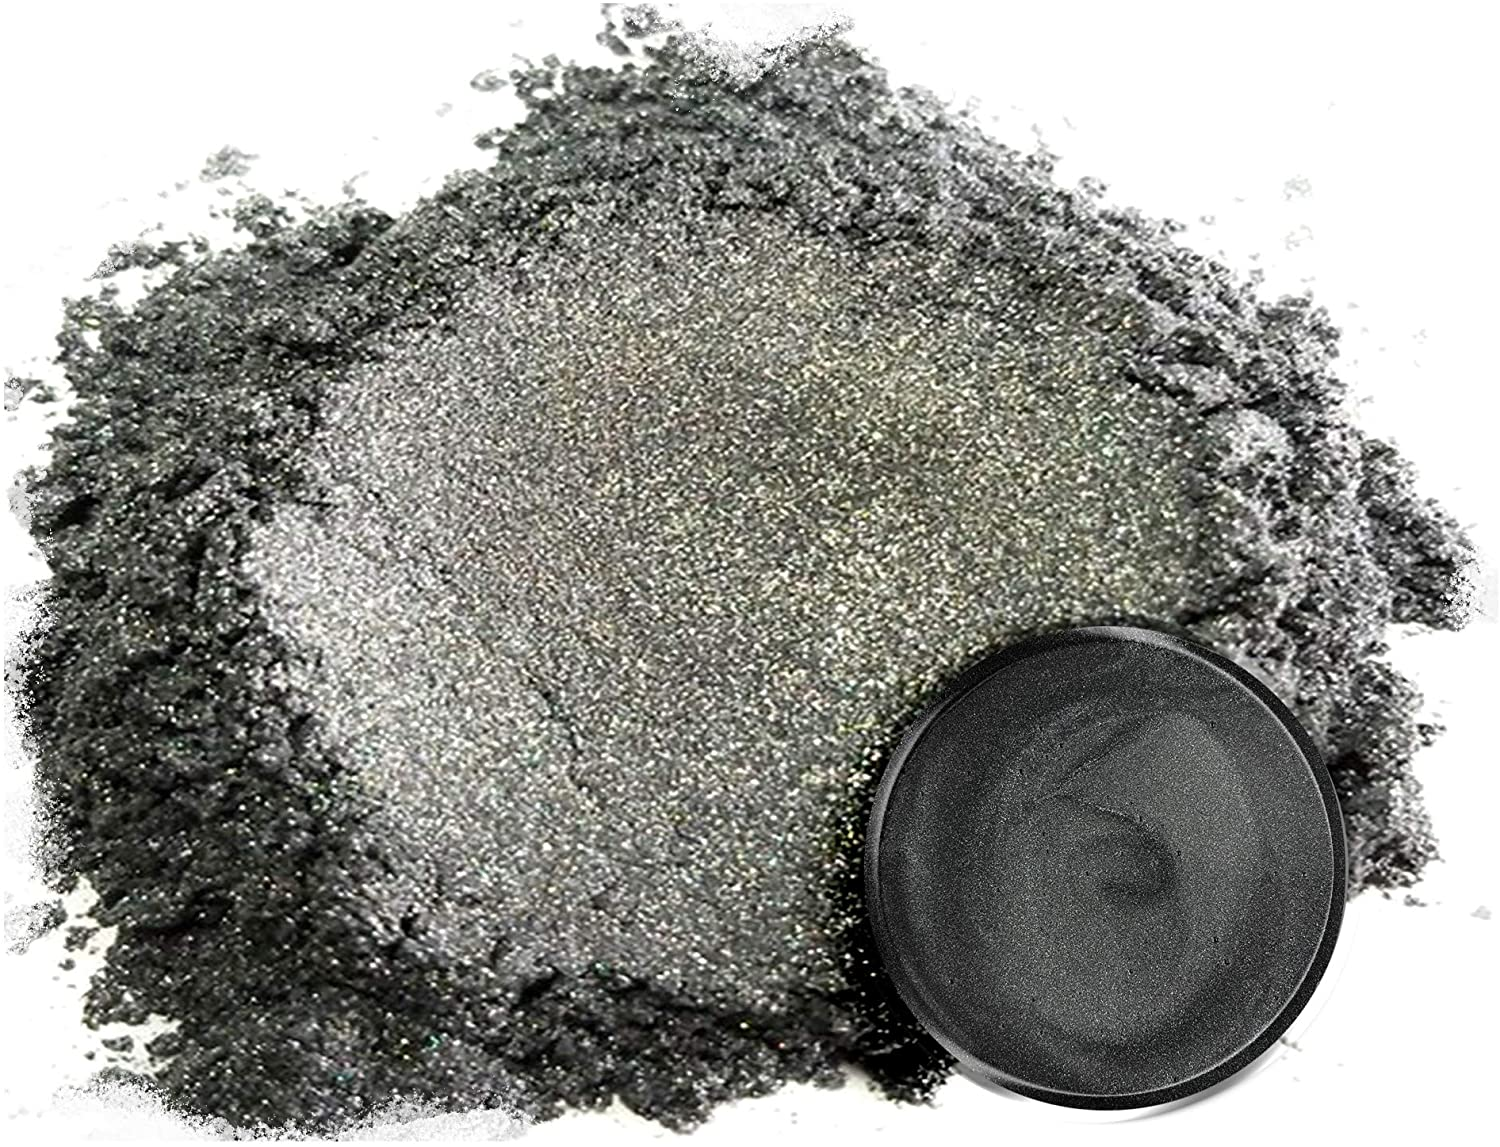 """Mica Powder Pigment """"Japanese Steel Grey"""" (50g) Multipurpose DIY Arts and Crafts Additive   Woodworking, Epoxy, Resin, Natural Bath Bombs, Paint, Soap, Nail Polish, Lip Balm (Japanese Steel Grey, 50G)"""